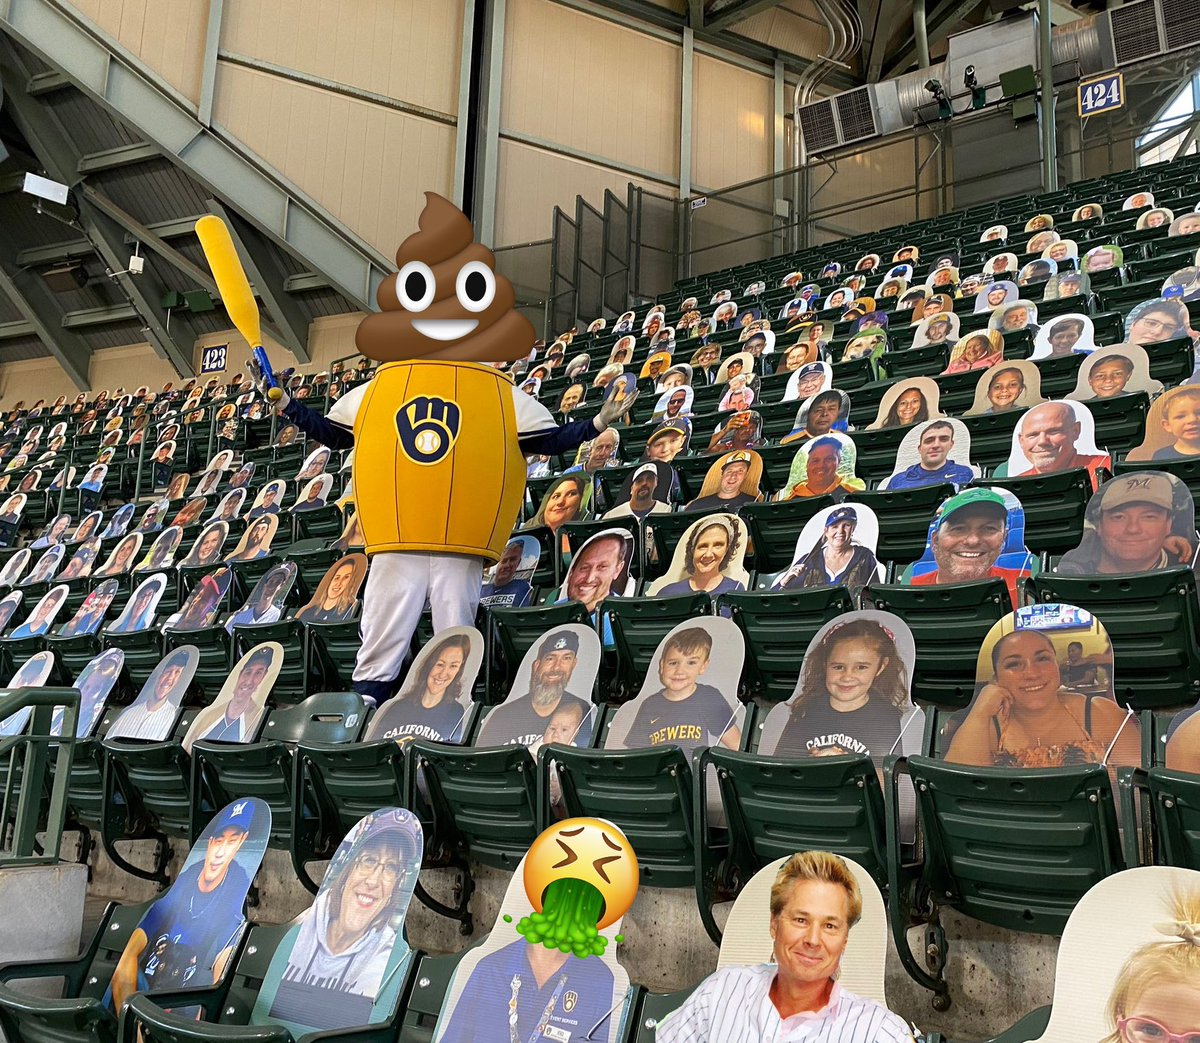 Spotted you amongst the cutouts Kato, they are already vomiting and diarrhea pic.twitter.com/13fkCTEmrP